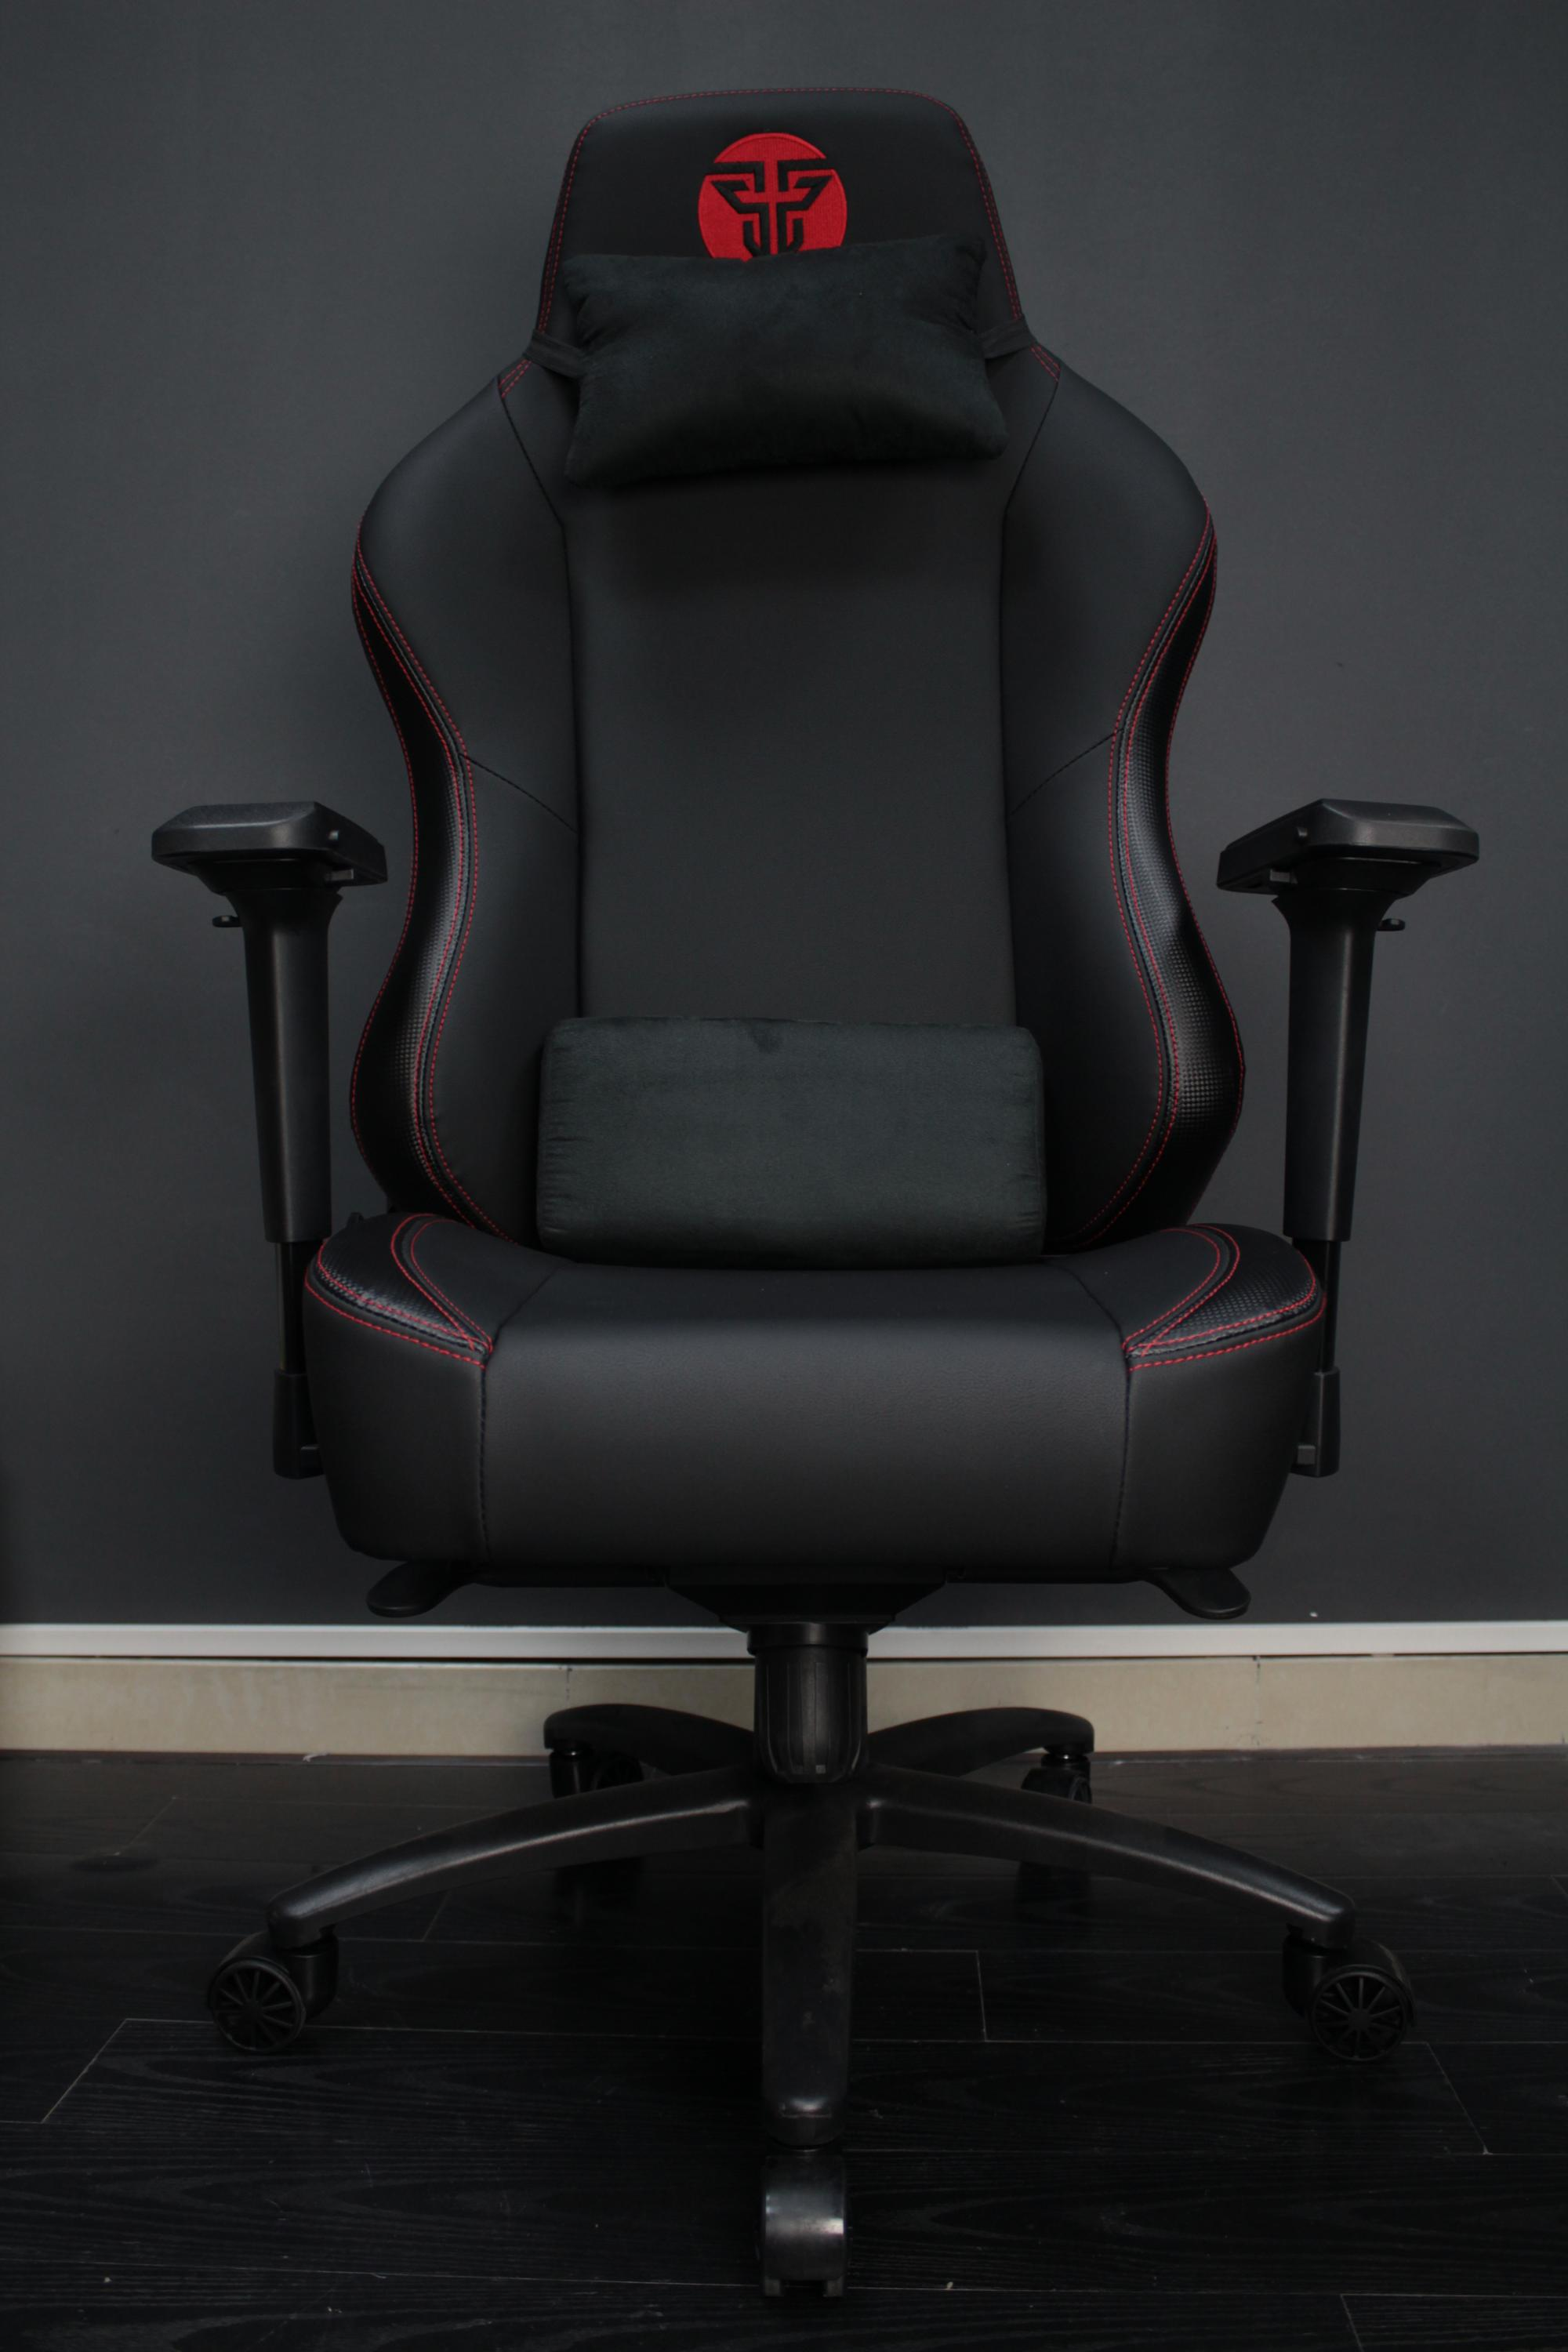 Fantech GC-183 Ergonomic Stability & Safety Gaming Chair 5